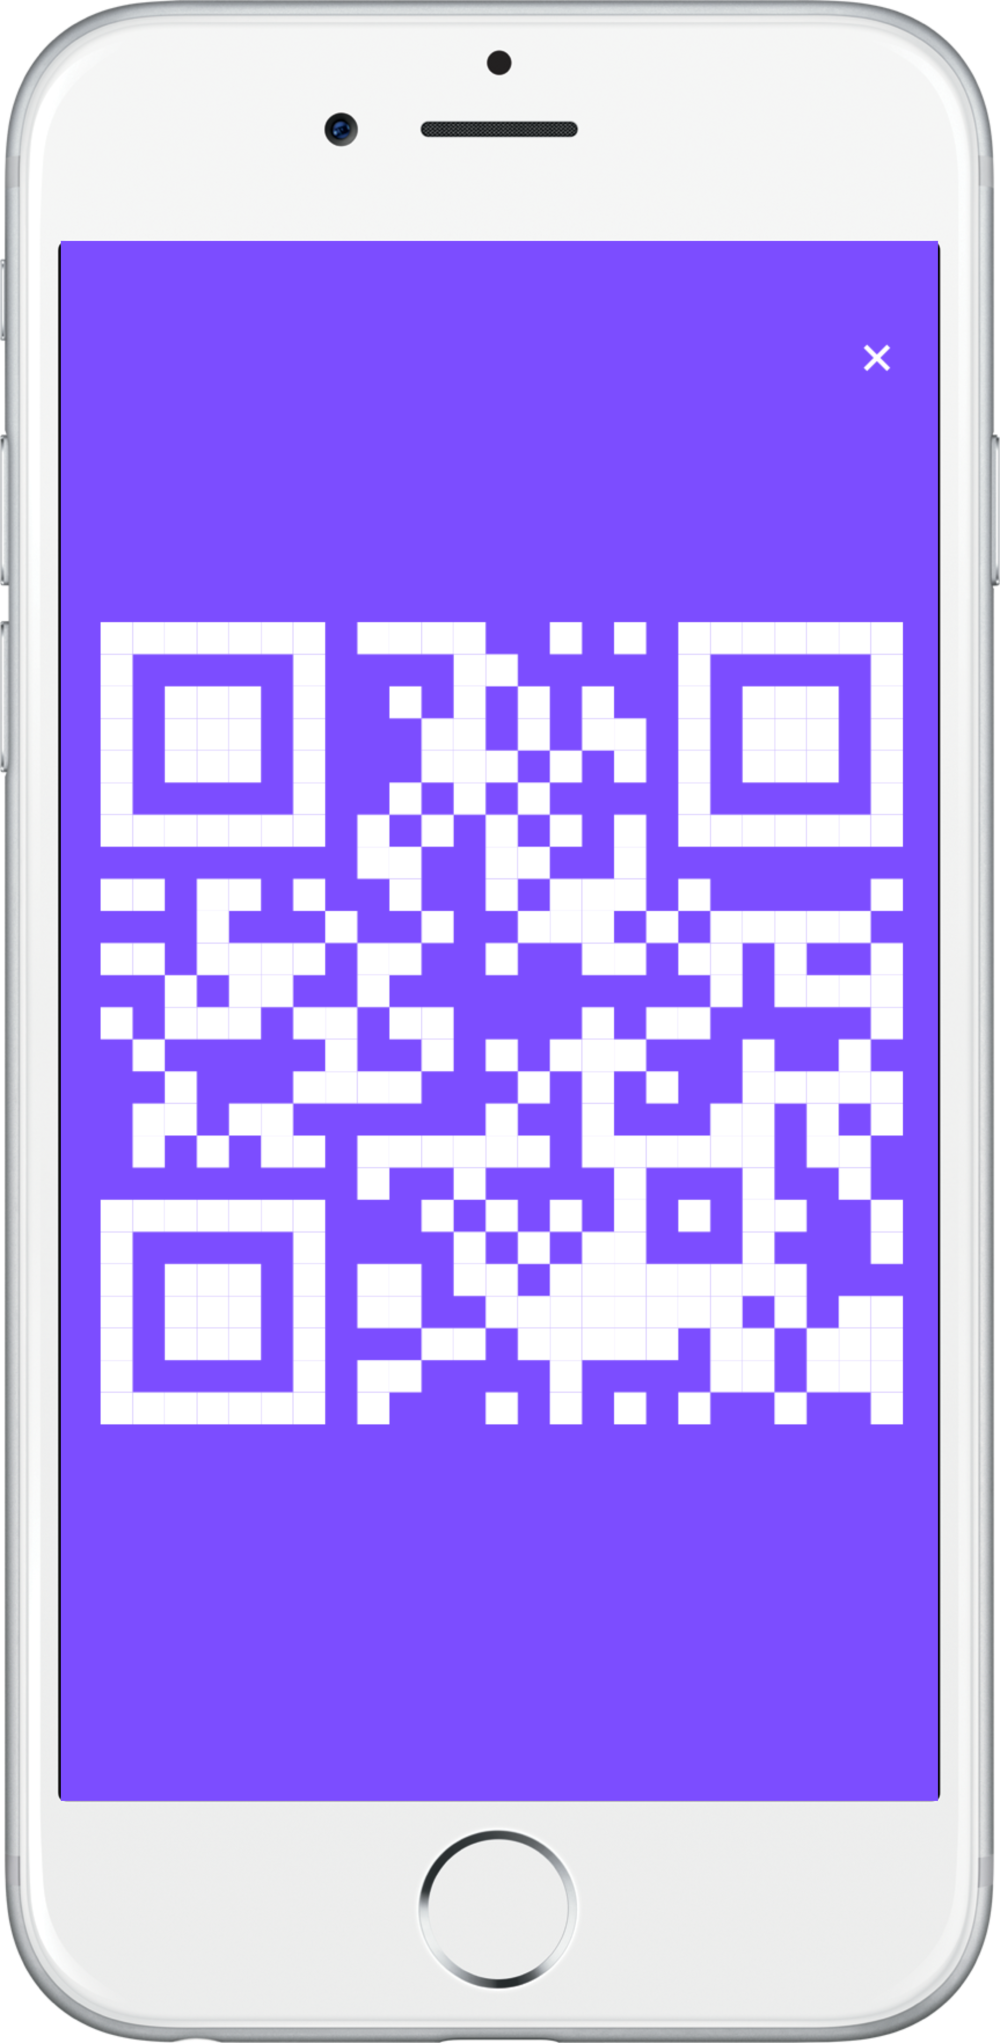 iPhone 6 Silver 2 + Notifications + Action + Full Screen QR.png